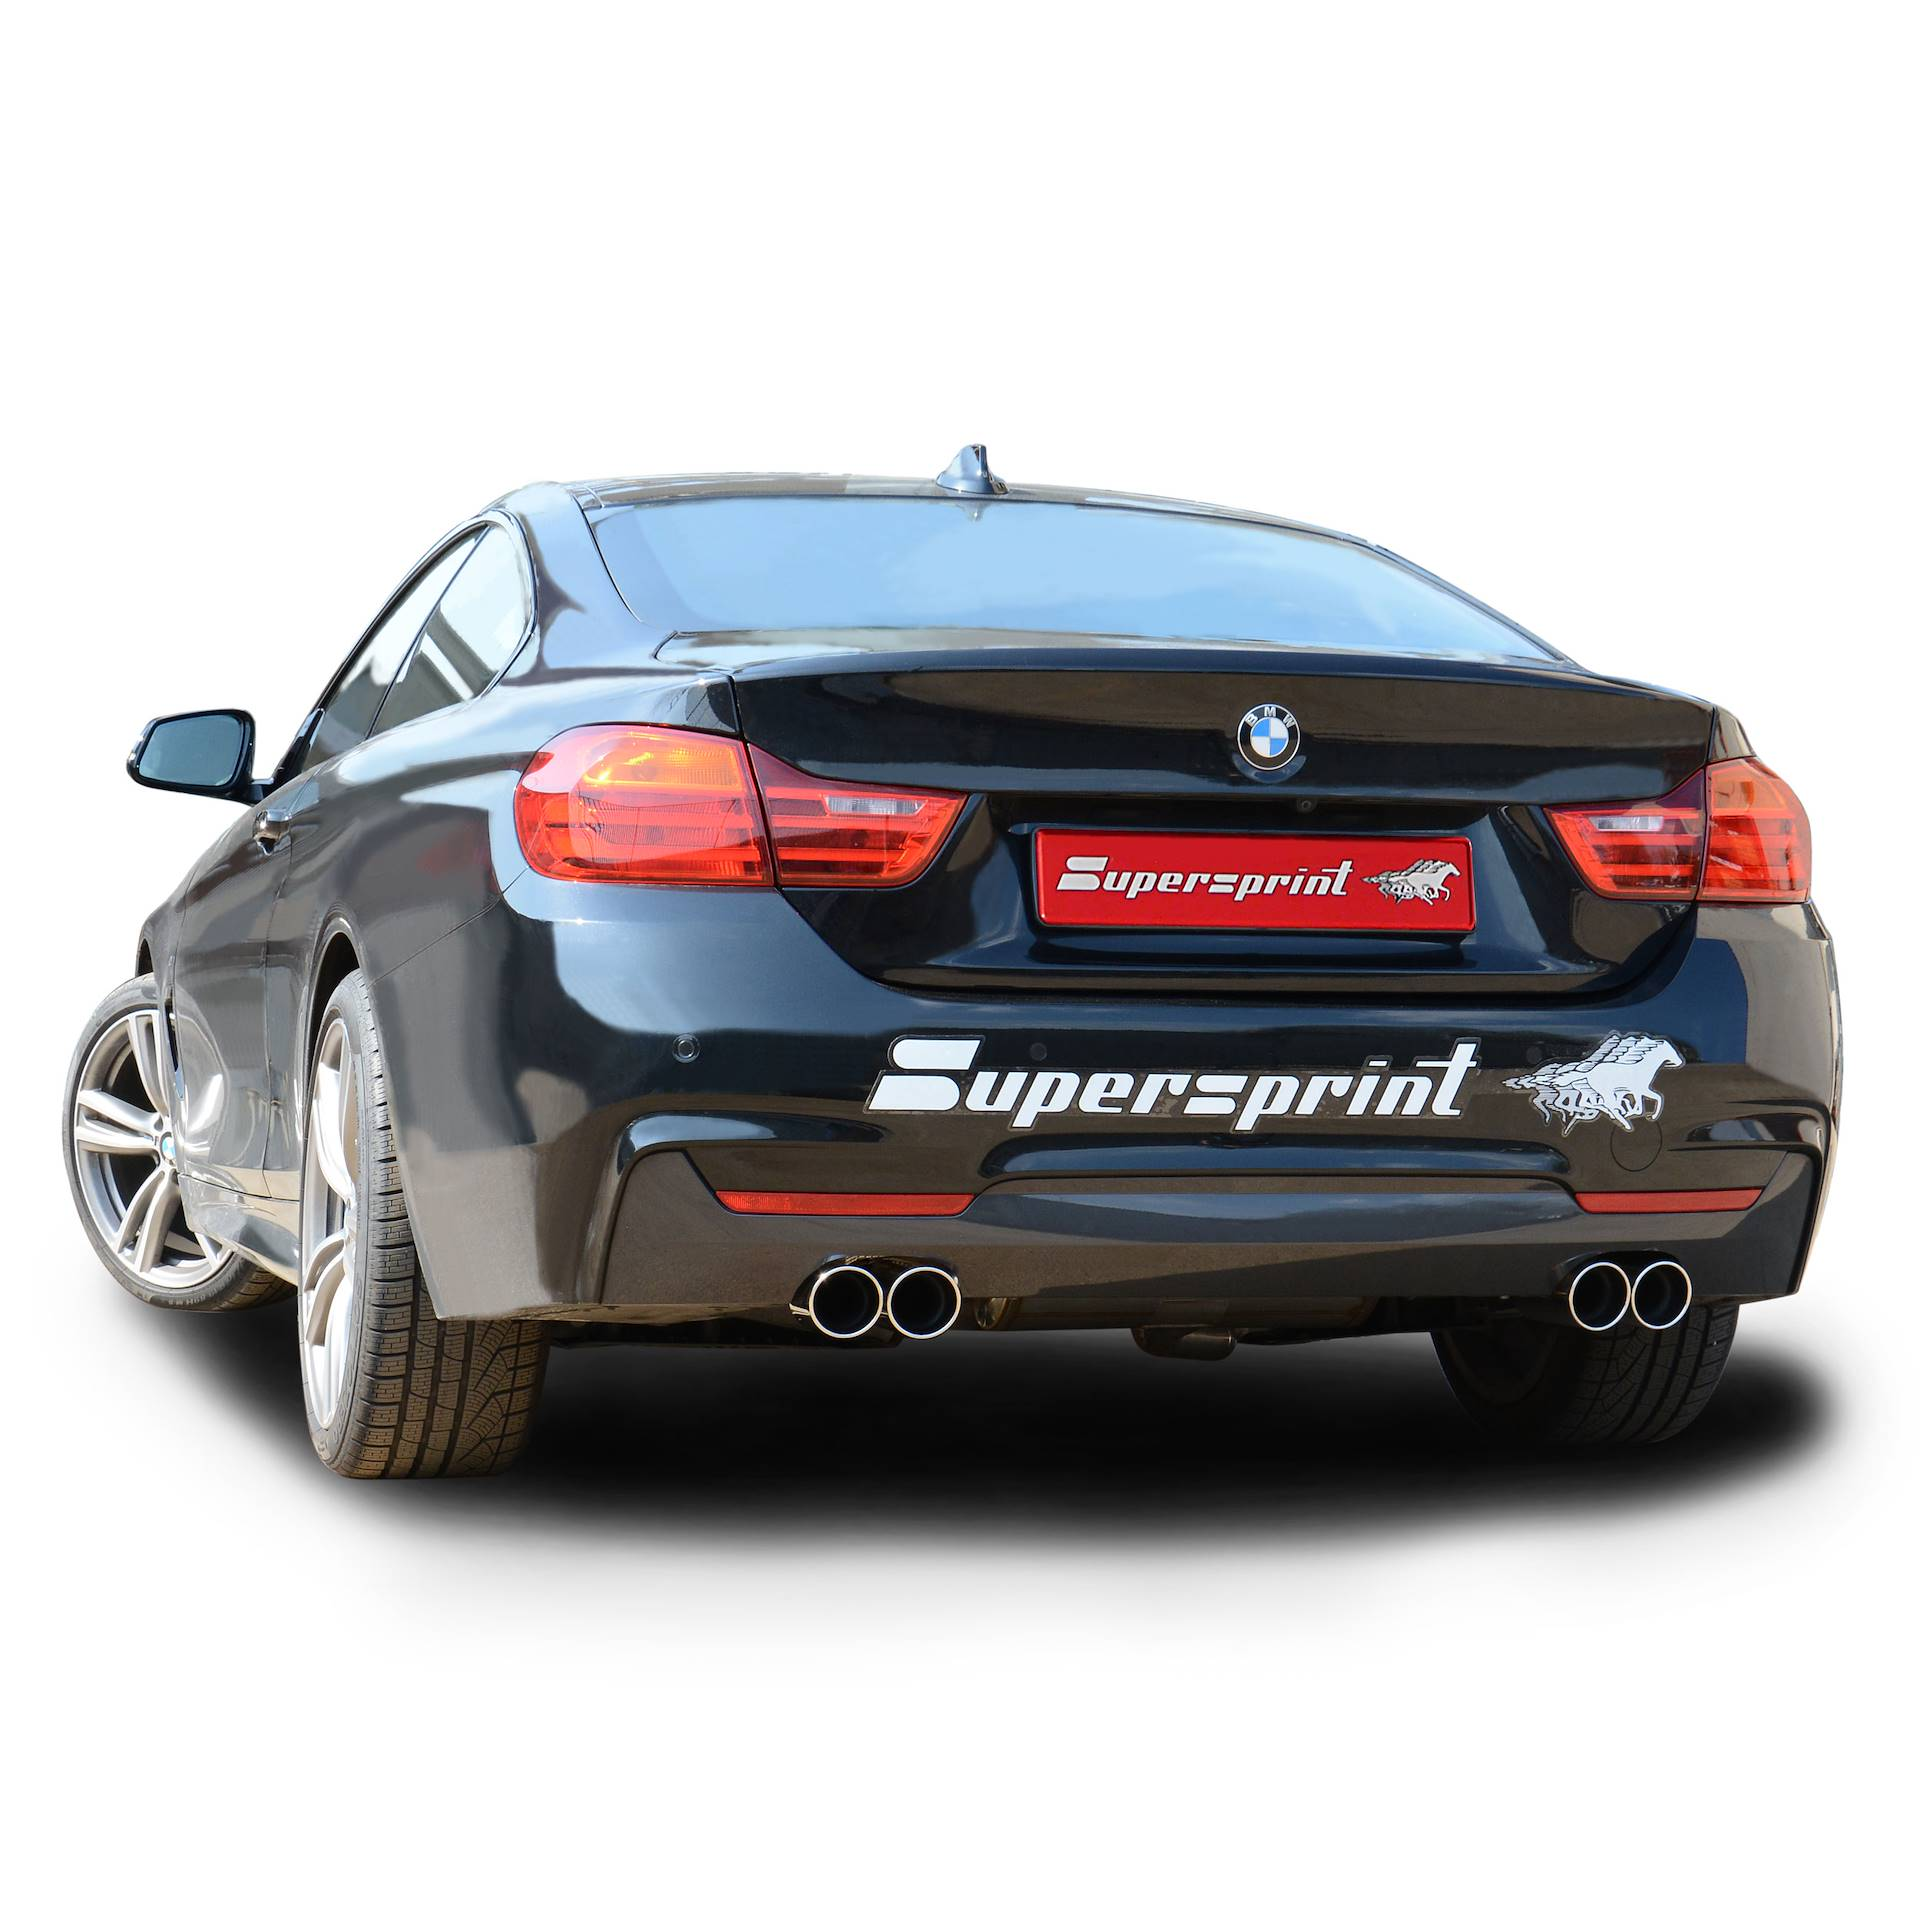 BMW - BMW F32 Coupè 435i (304 PS/306 PS) 2013 ->